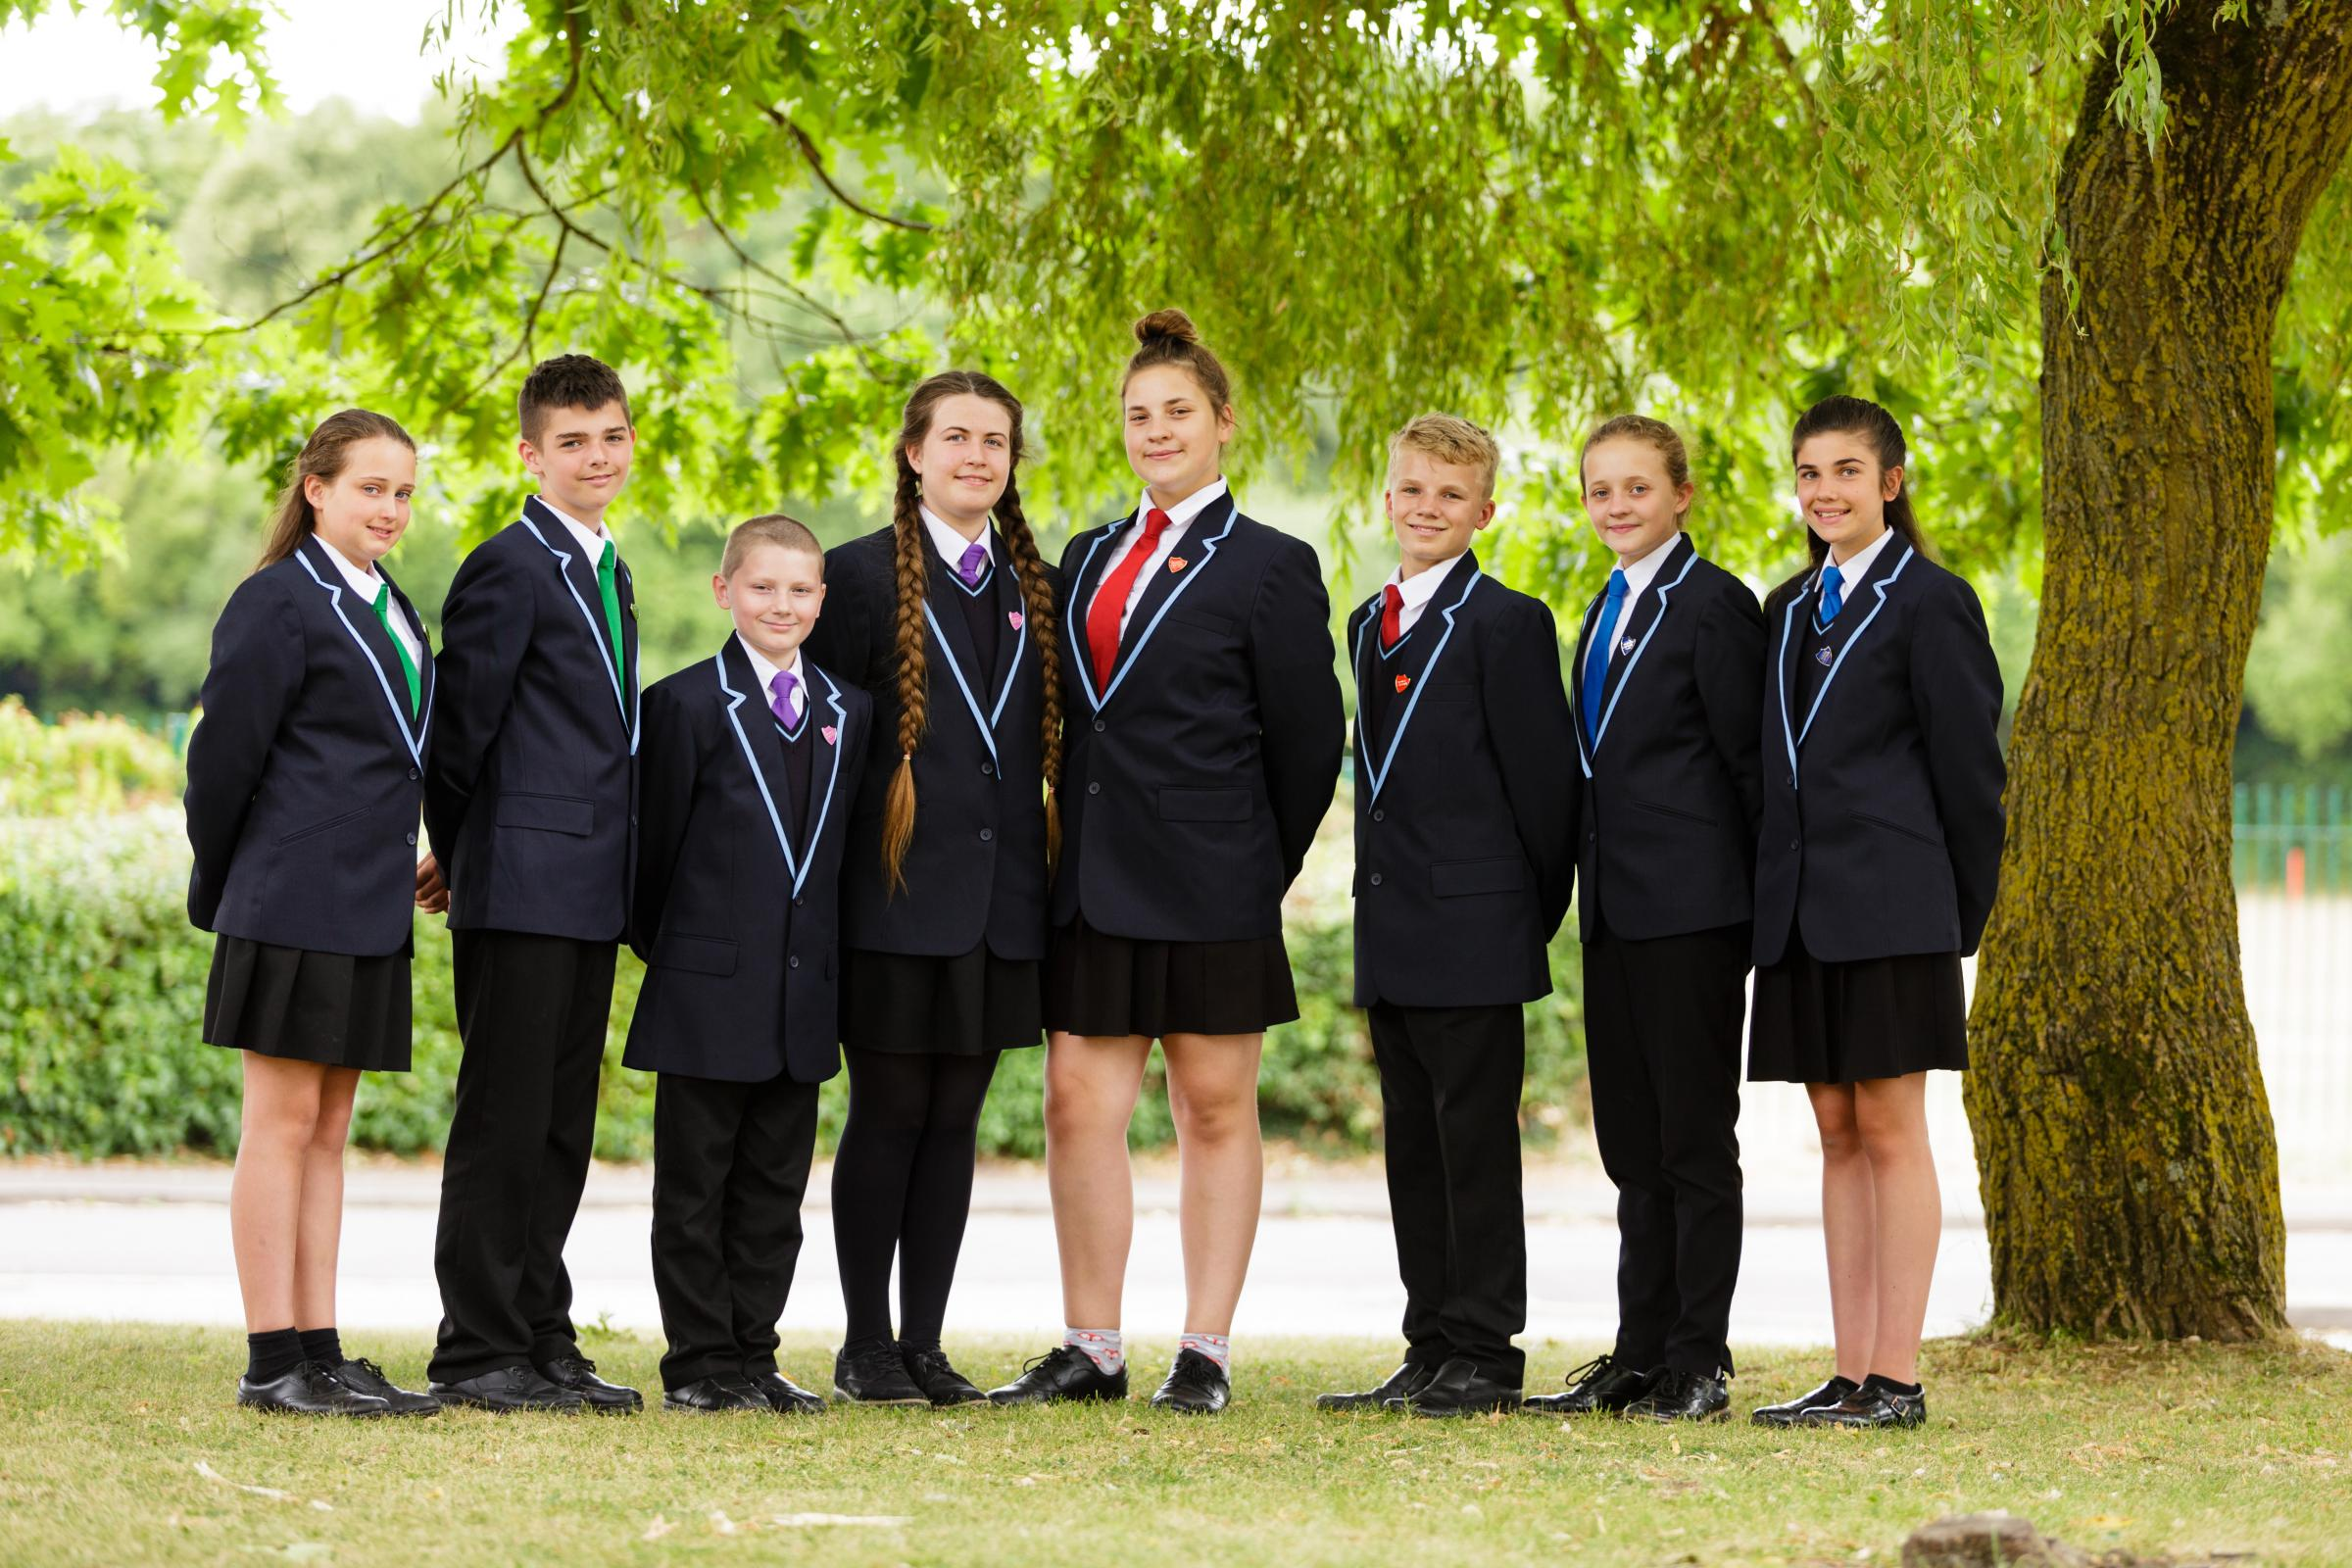 House captains and deputy captains in the new uniform, Jonny Back Photography